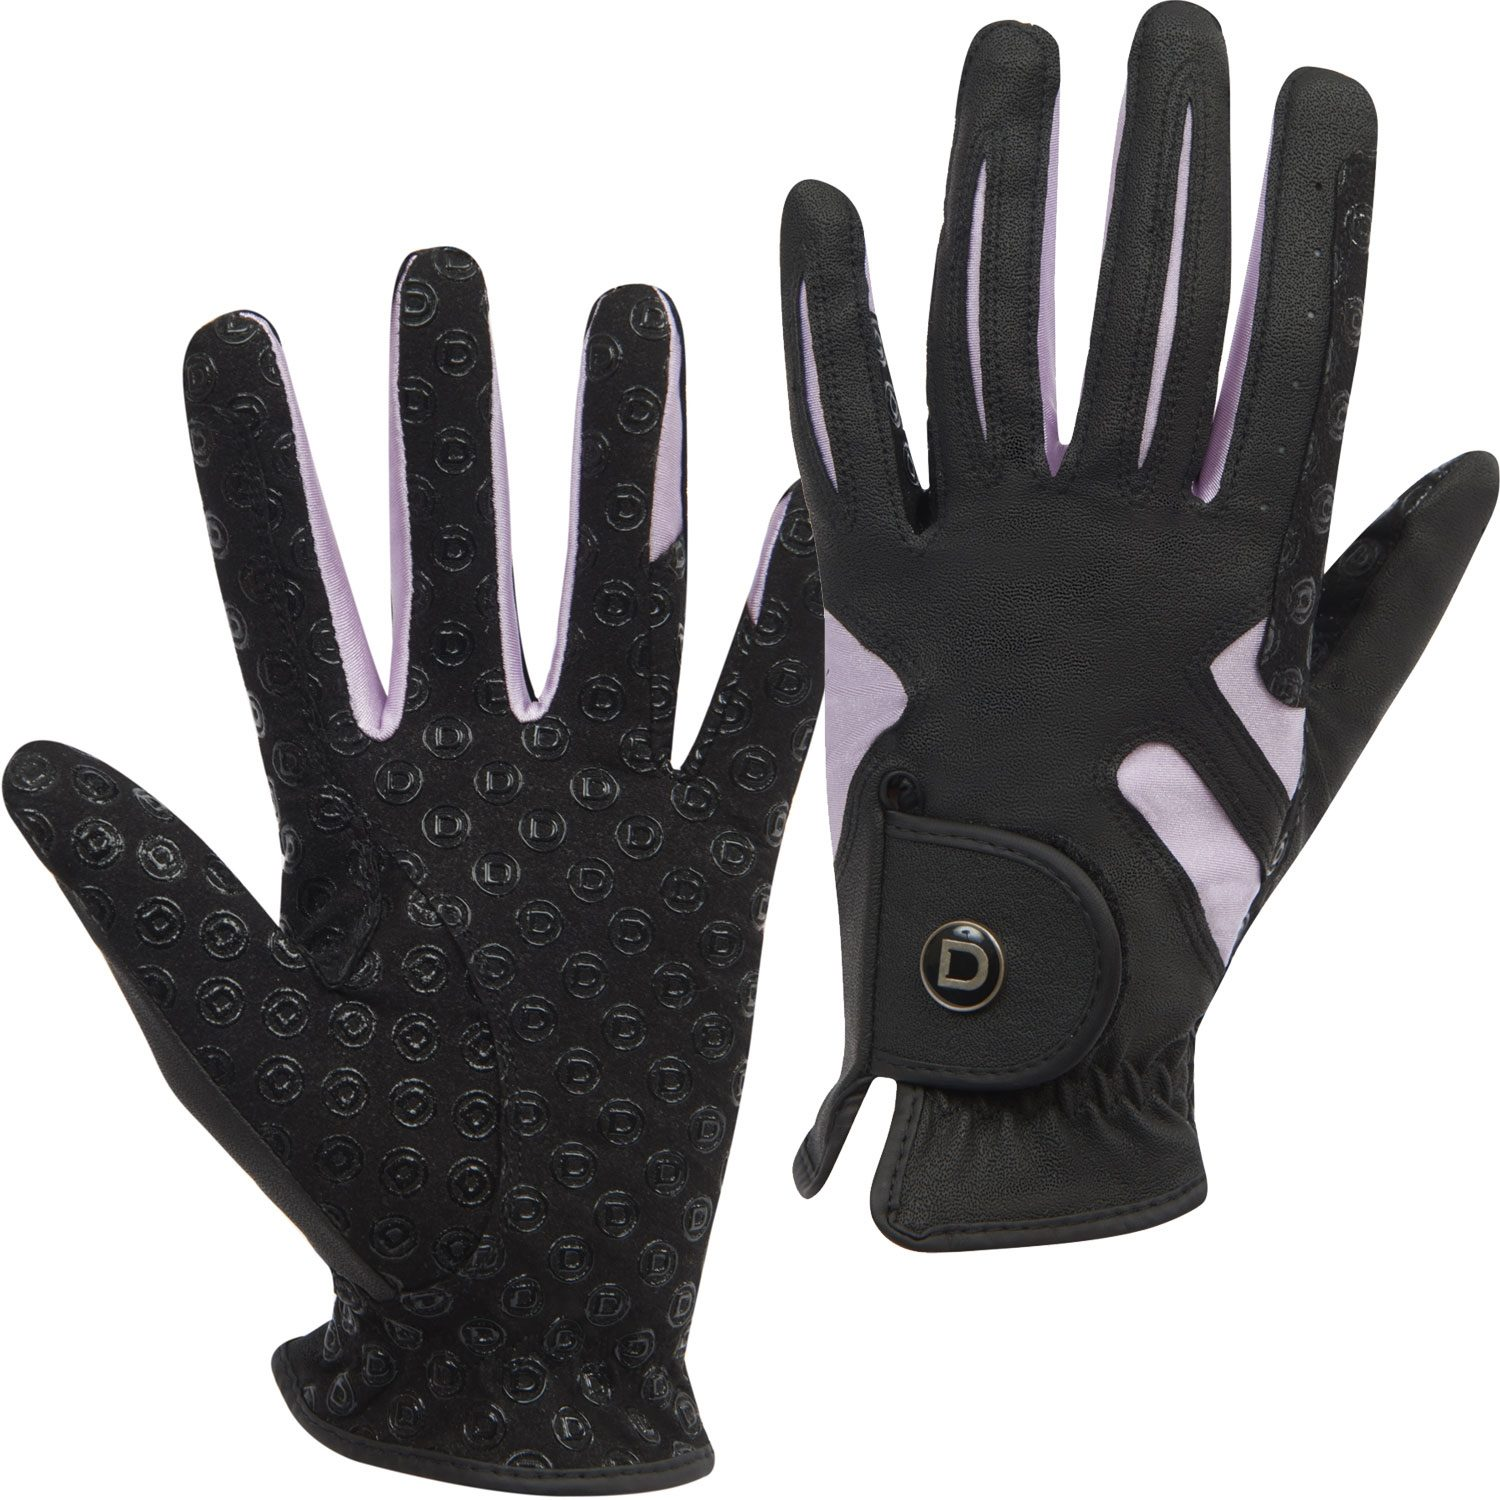 Cool-it Gel Gloves